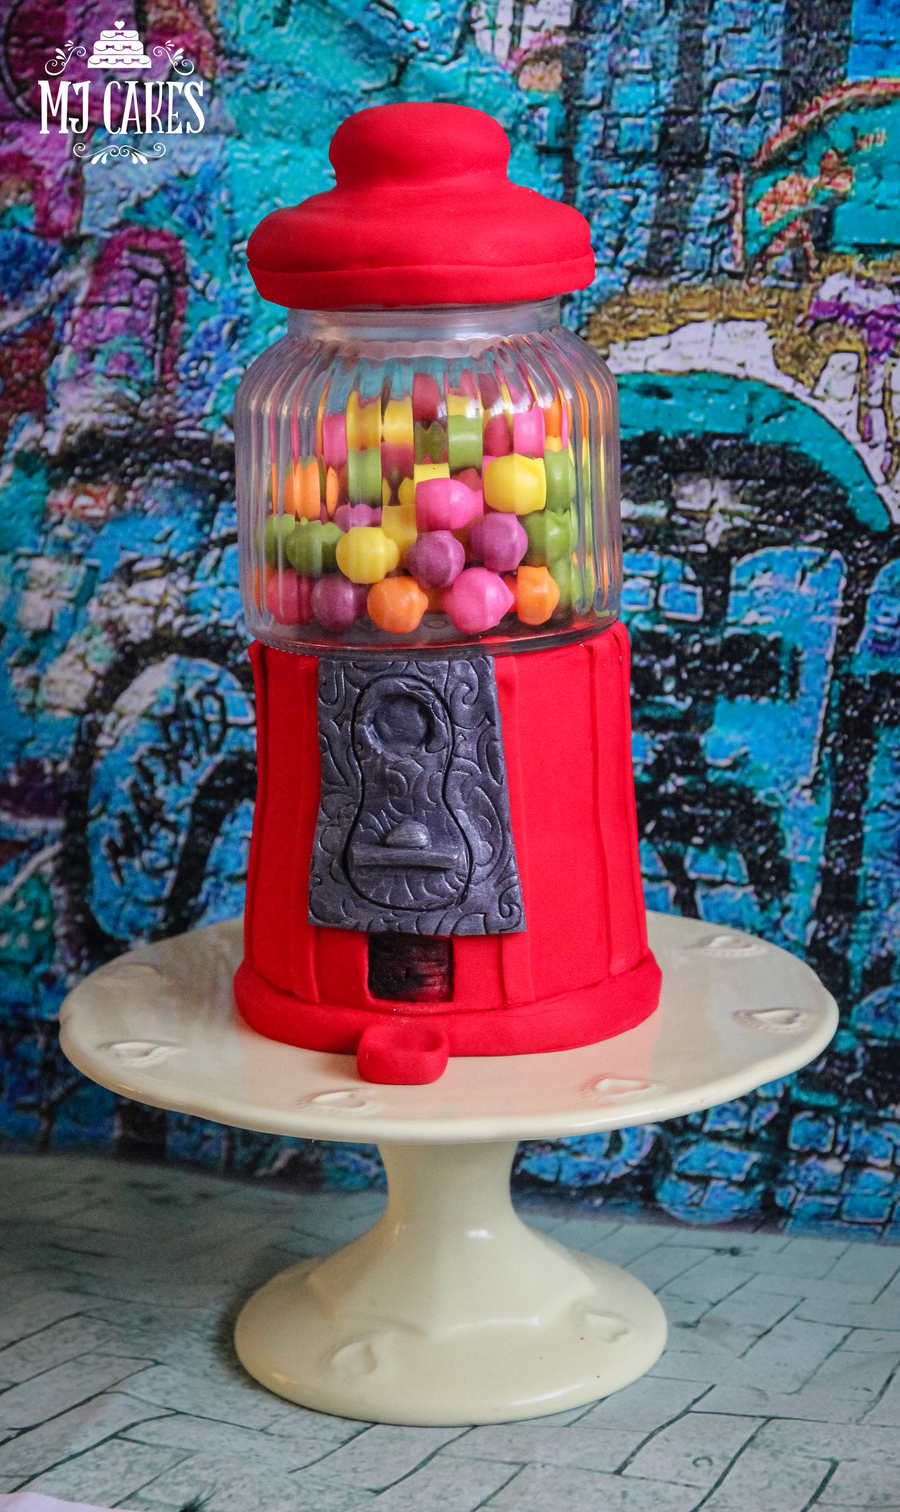 Old Fashioned Gumball Machine Cake - CakeCentral.com